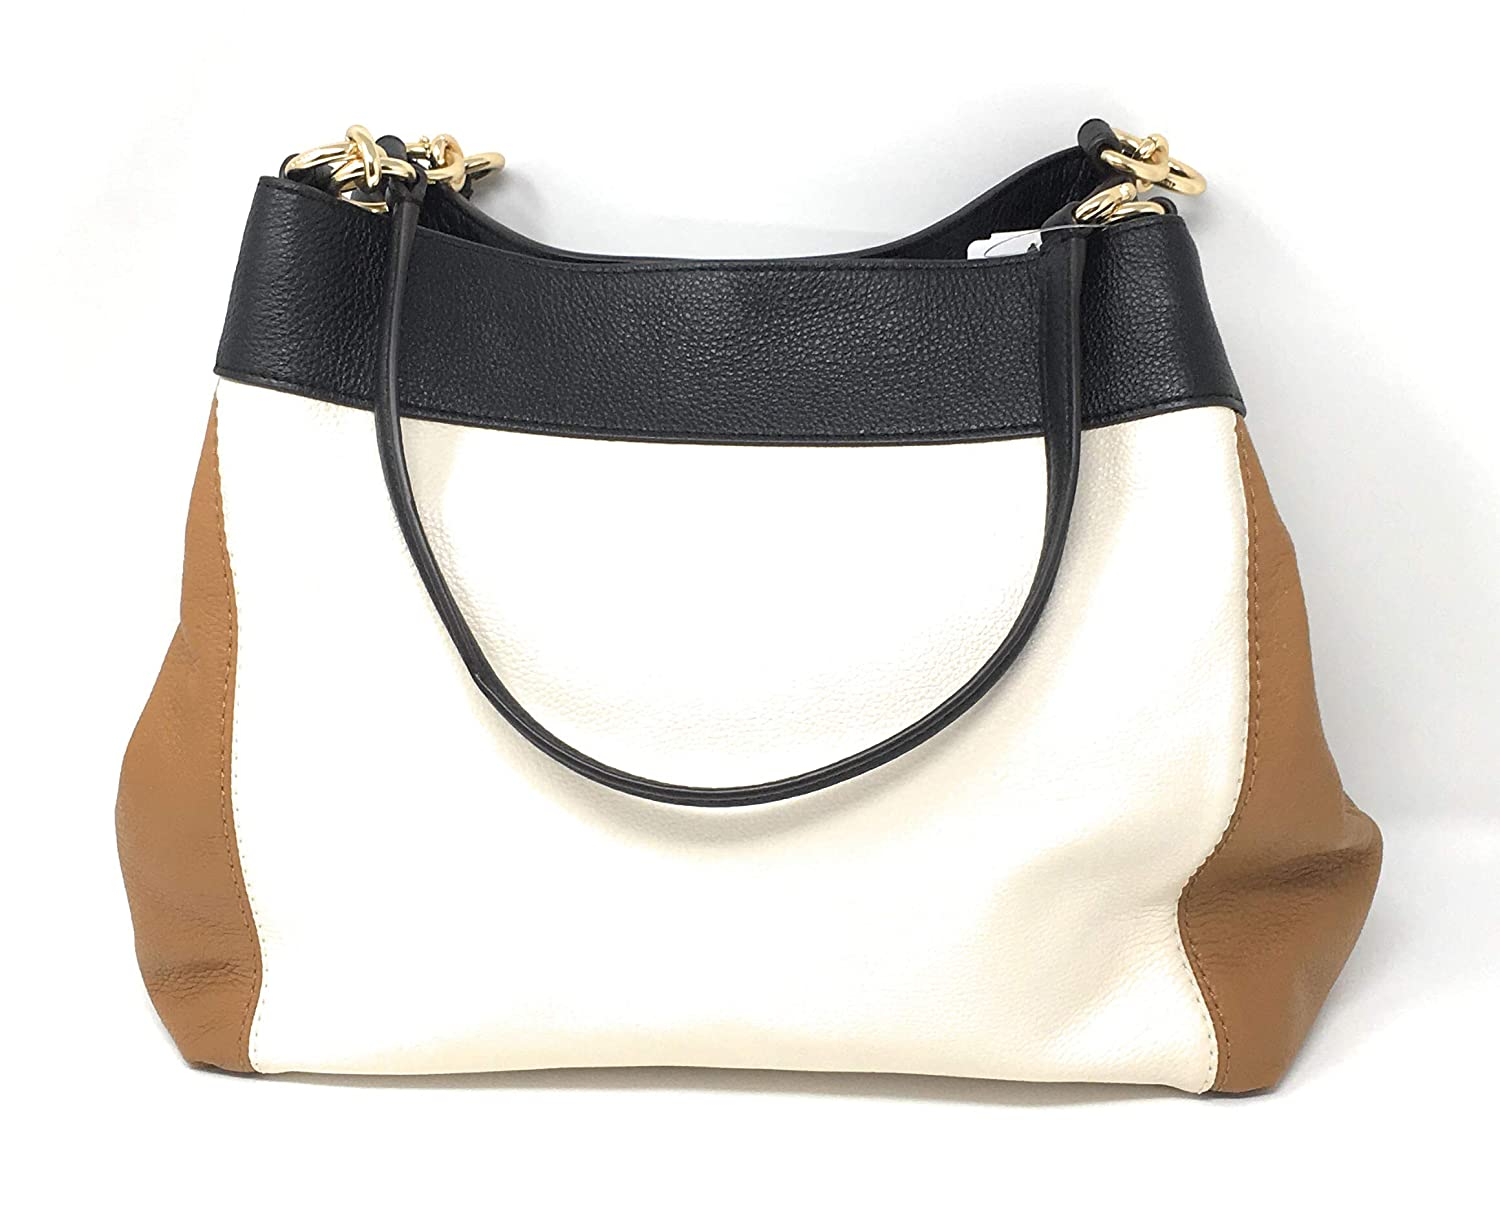 Amazon.com: COACH F31992 LEXY SHOULDER BAG IN COLORBLOCK: Shoes